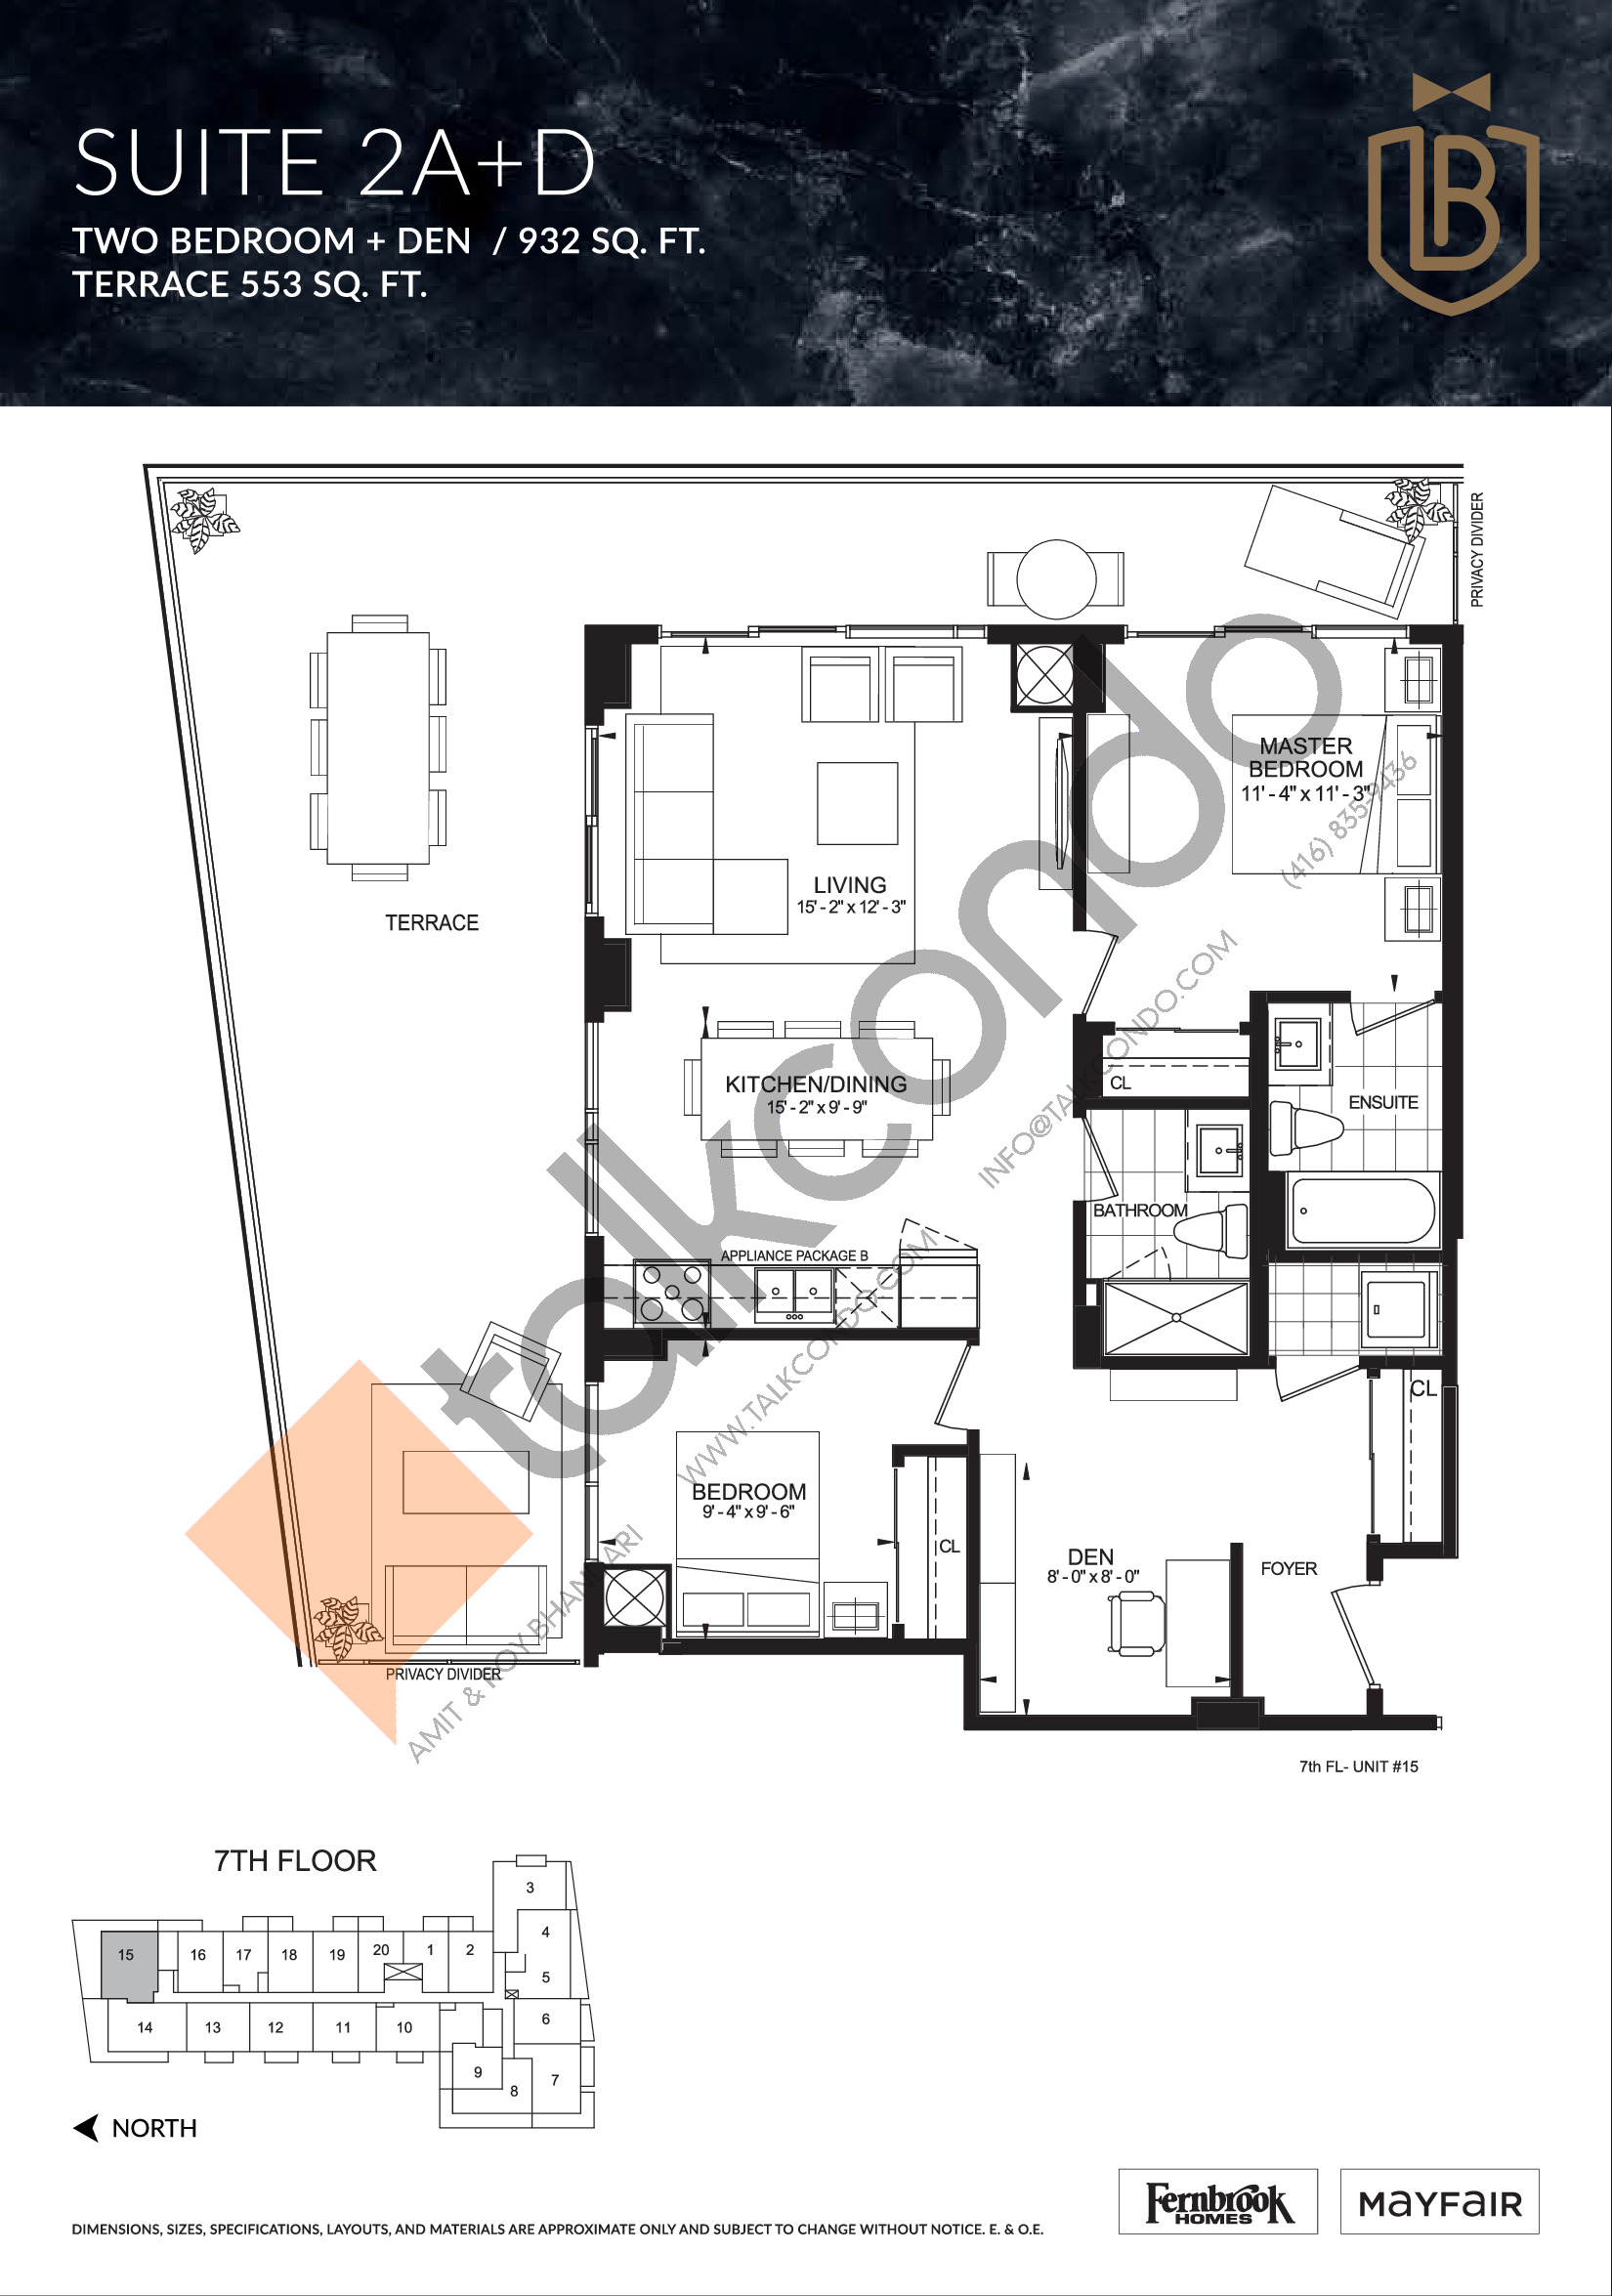 Suite 2A+D (Terrace) Floor Plan at The Butler Condos - 932 sq.ft